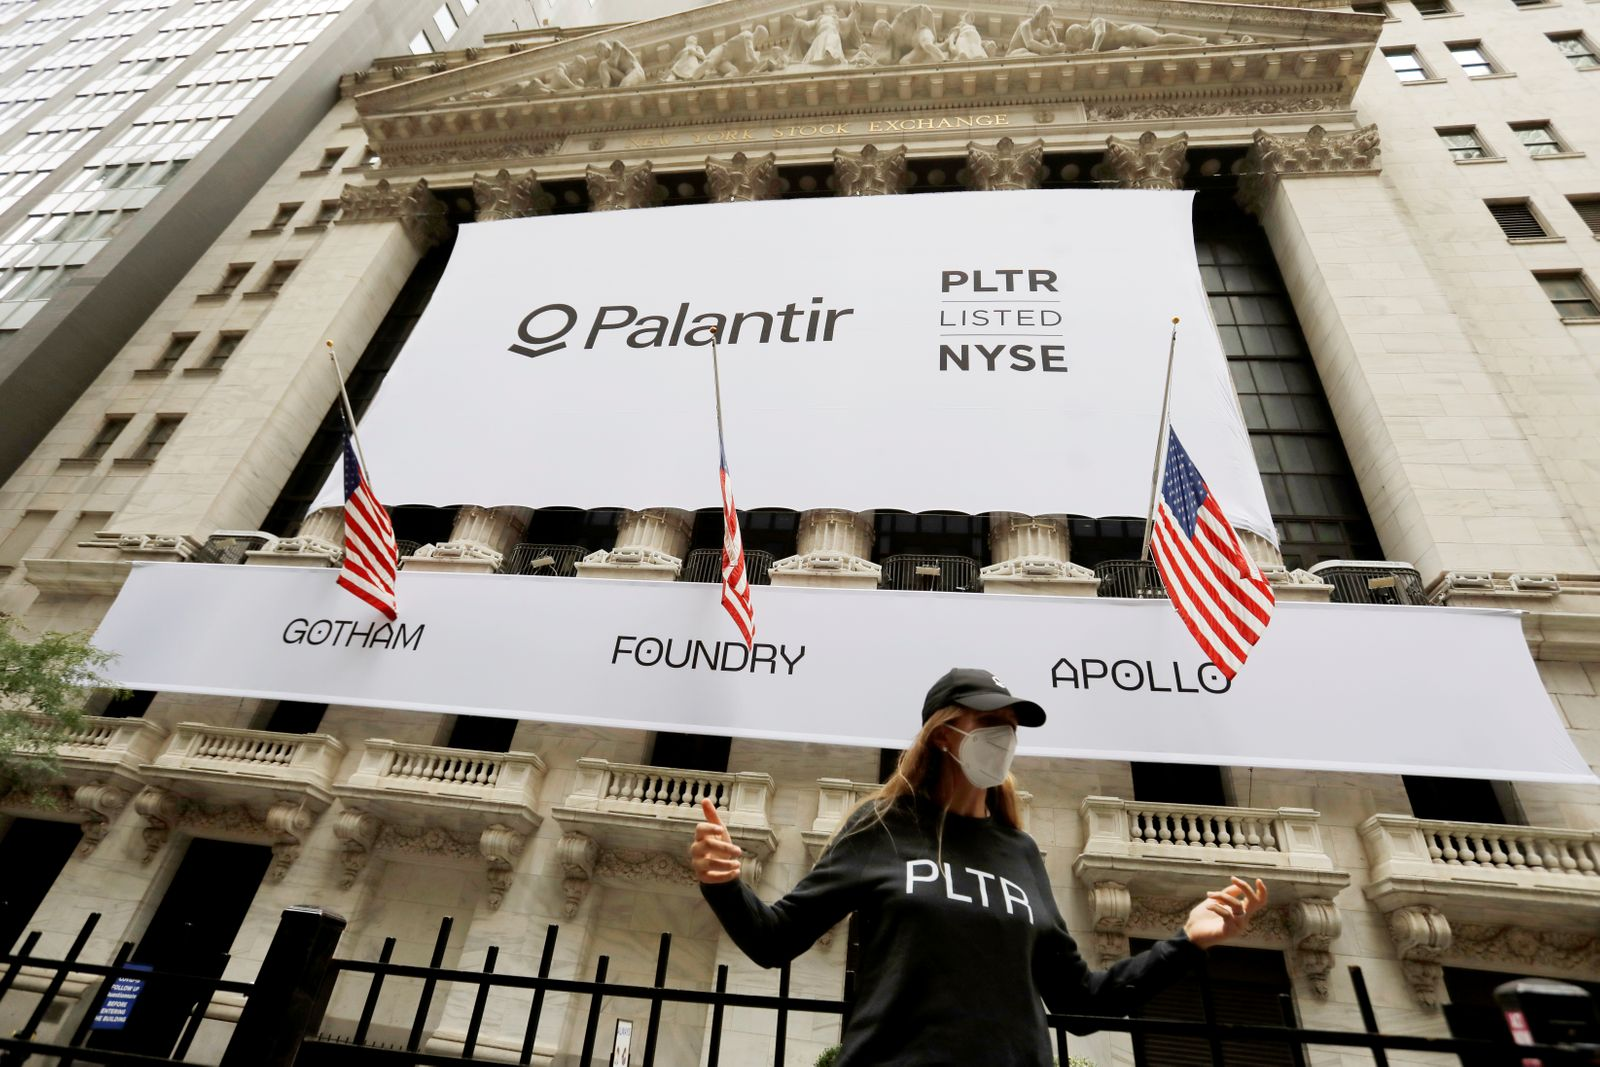 A person poses in front of a banner featuring the logo of Palantir Technologies (PLTR) at the New York Stock Exchange (NYSE) on the day of their initial public offering (IPO) in Manhattan, New York City